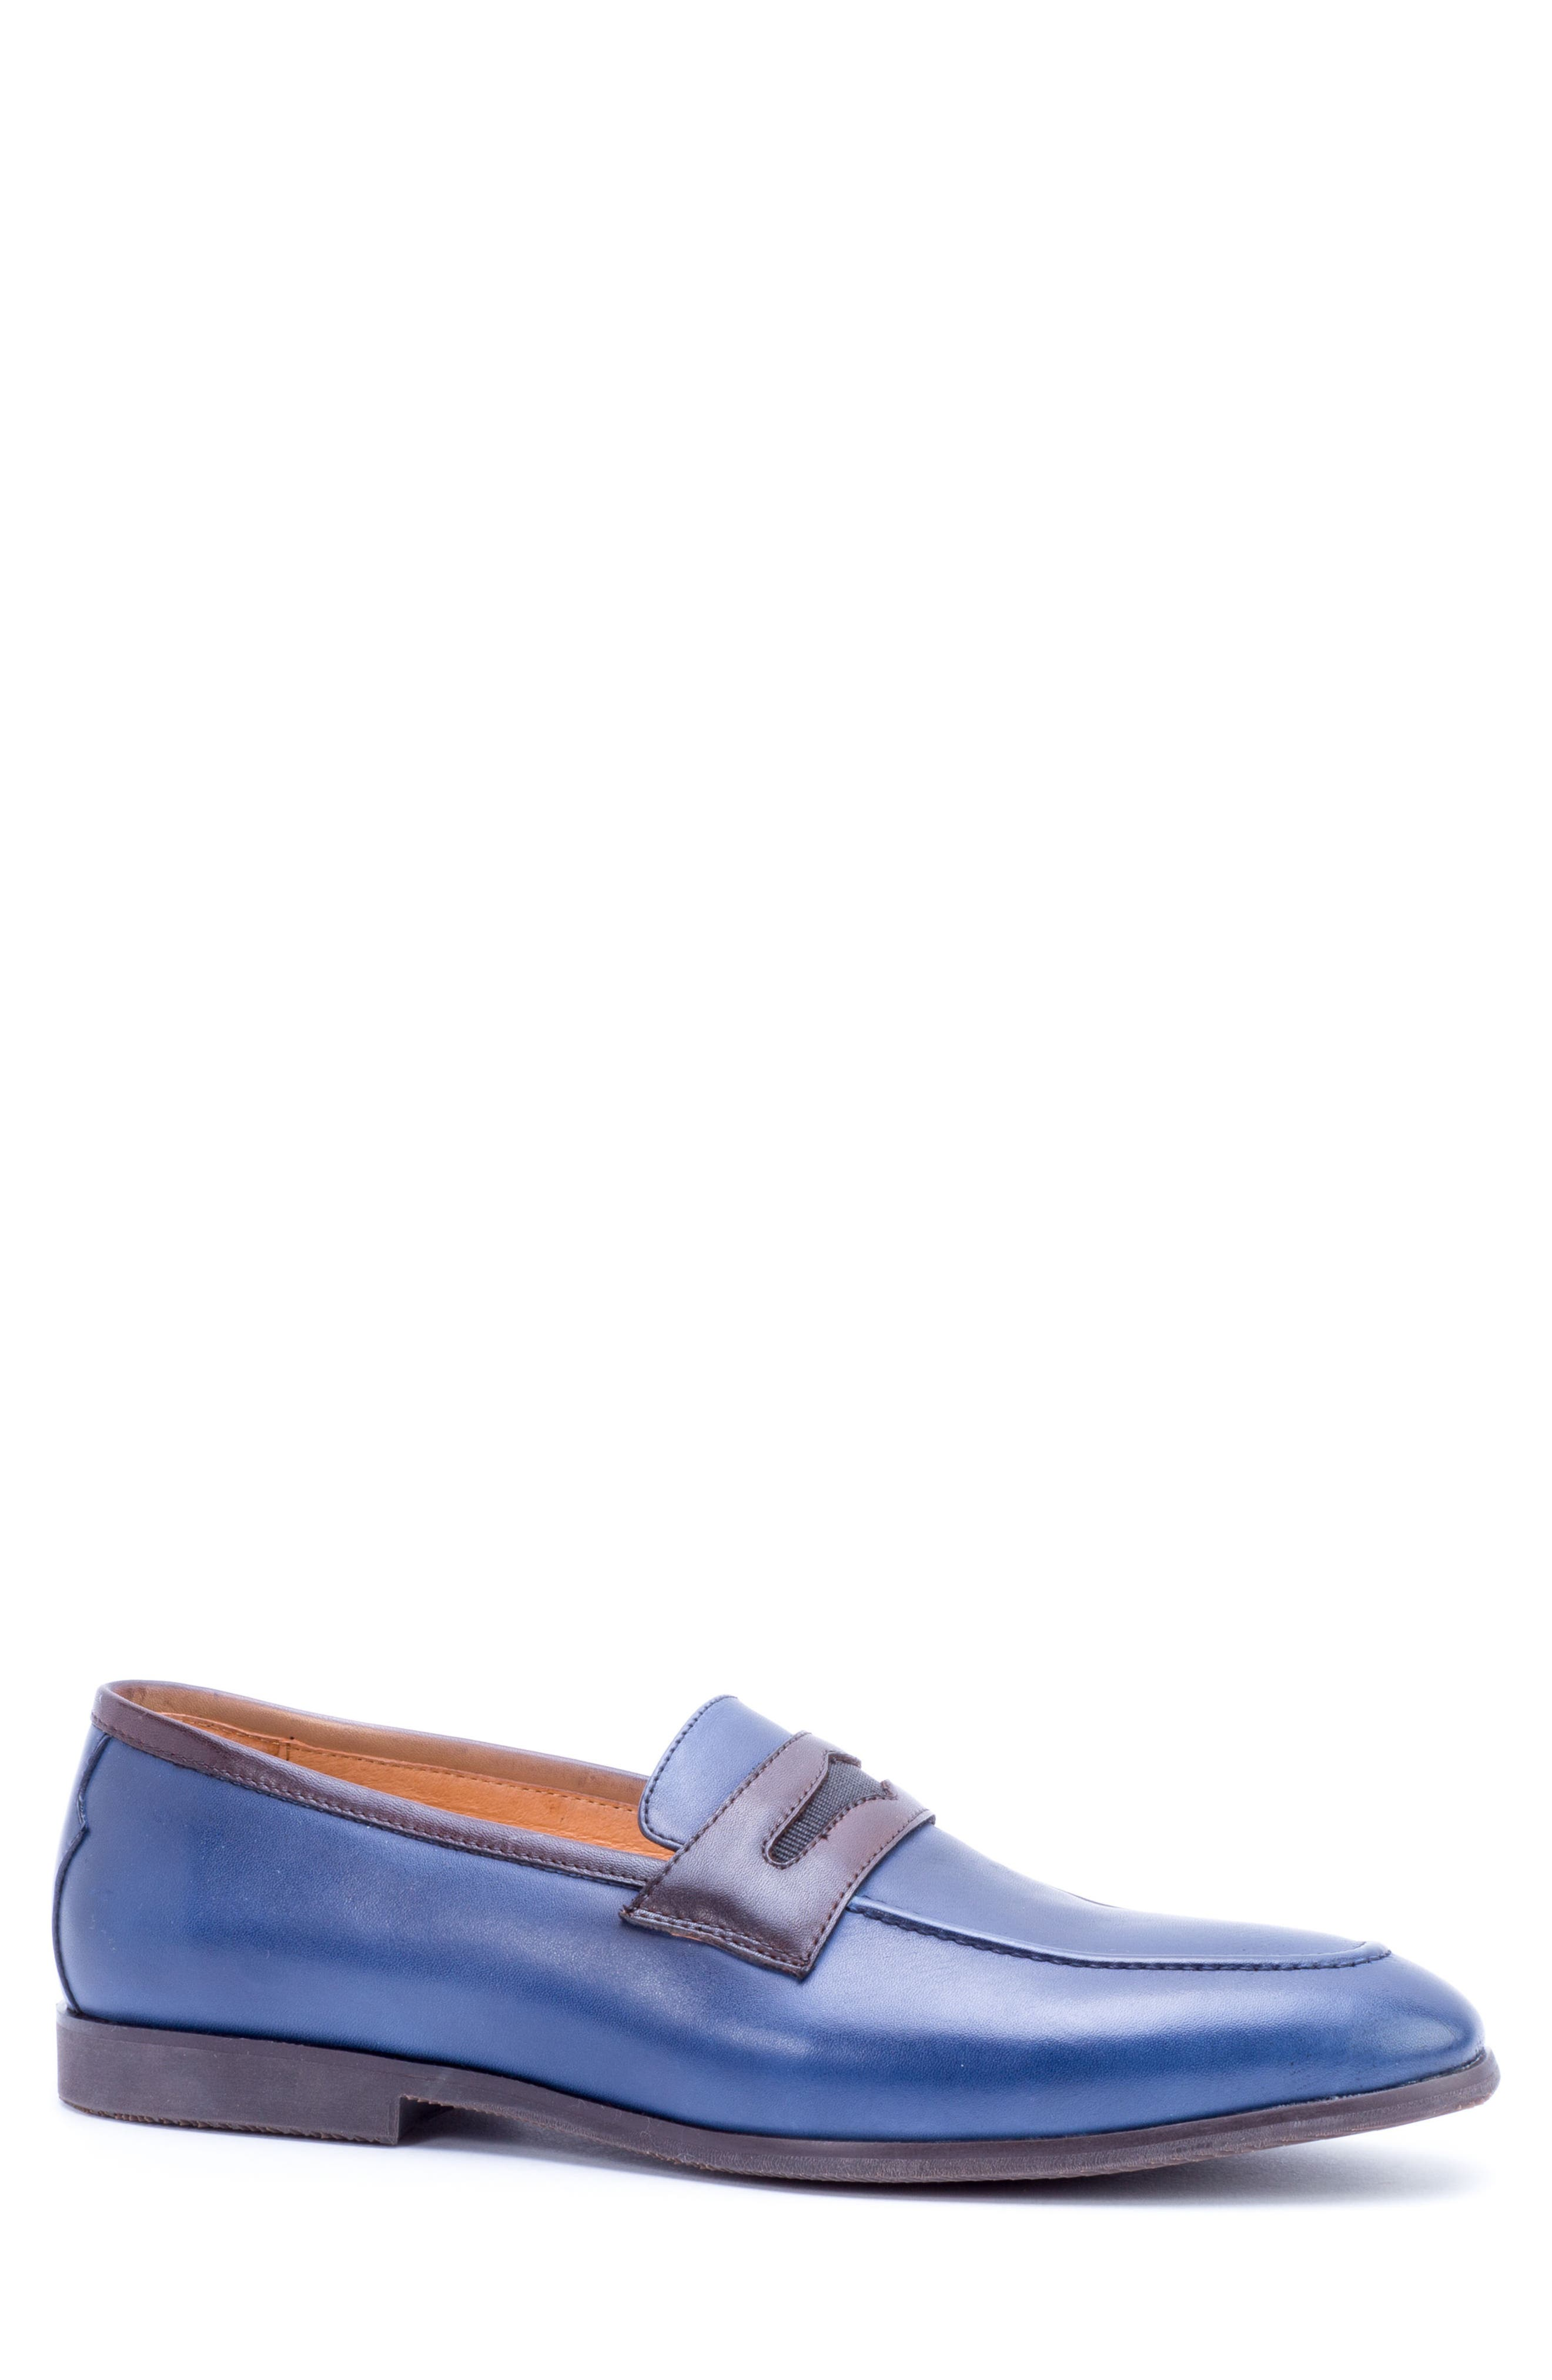 Apron Toe Penny Loafer,                             Alternate thumbnail 3, color,                             Navy Leather